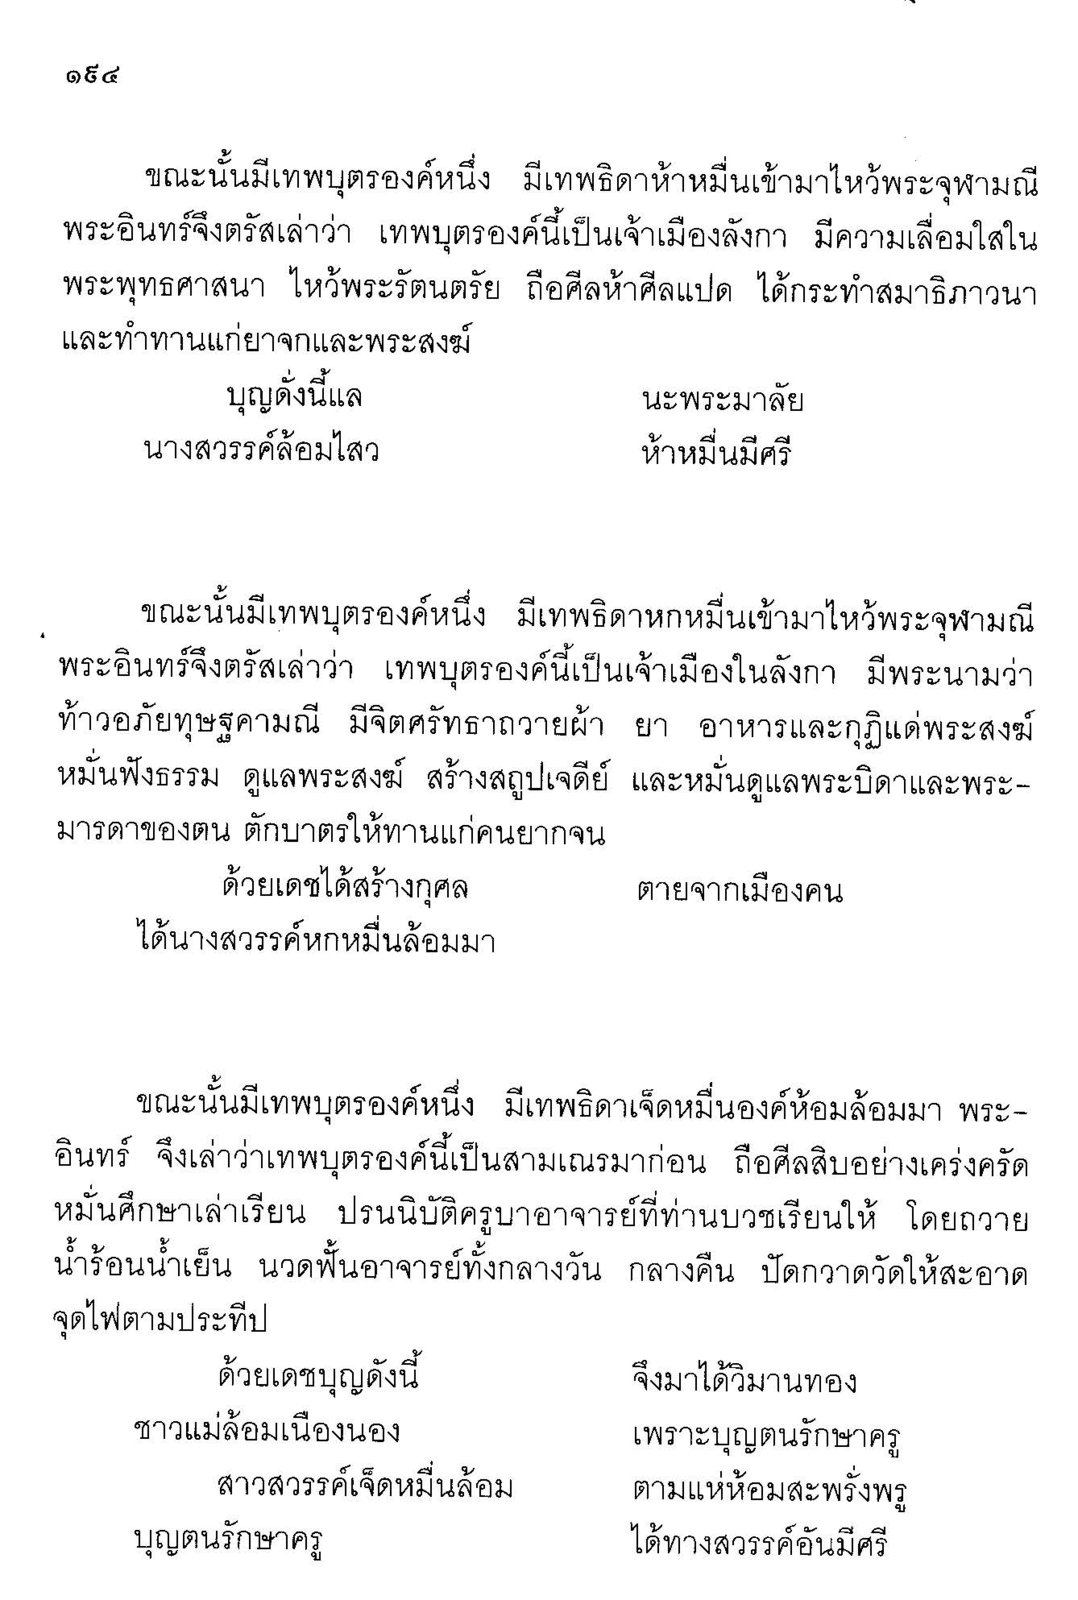 ebook_thai_sect_2_65-990_Page_202.jpg